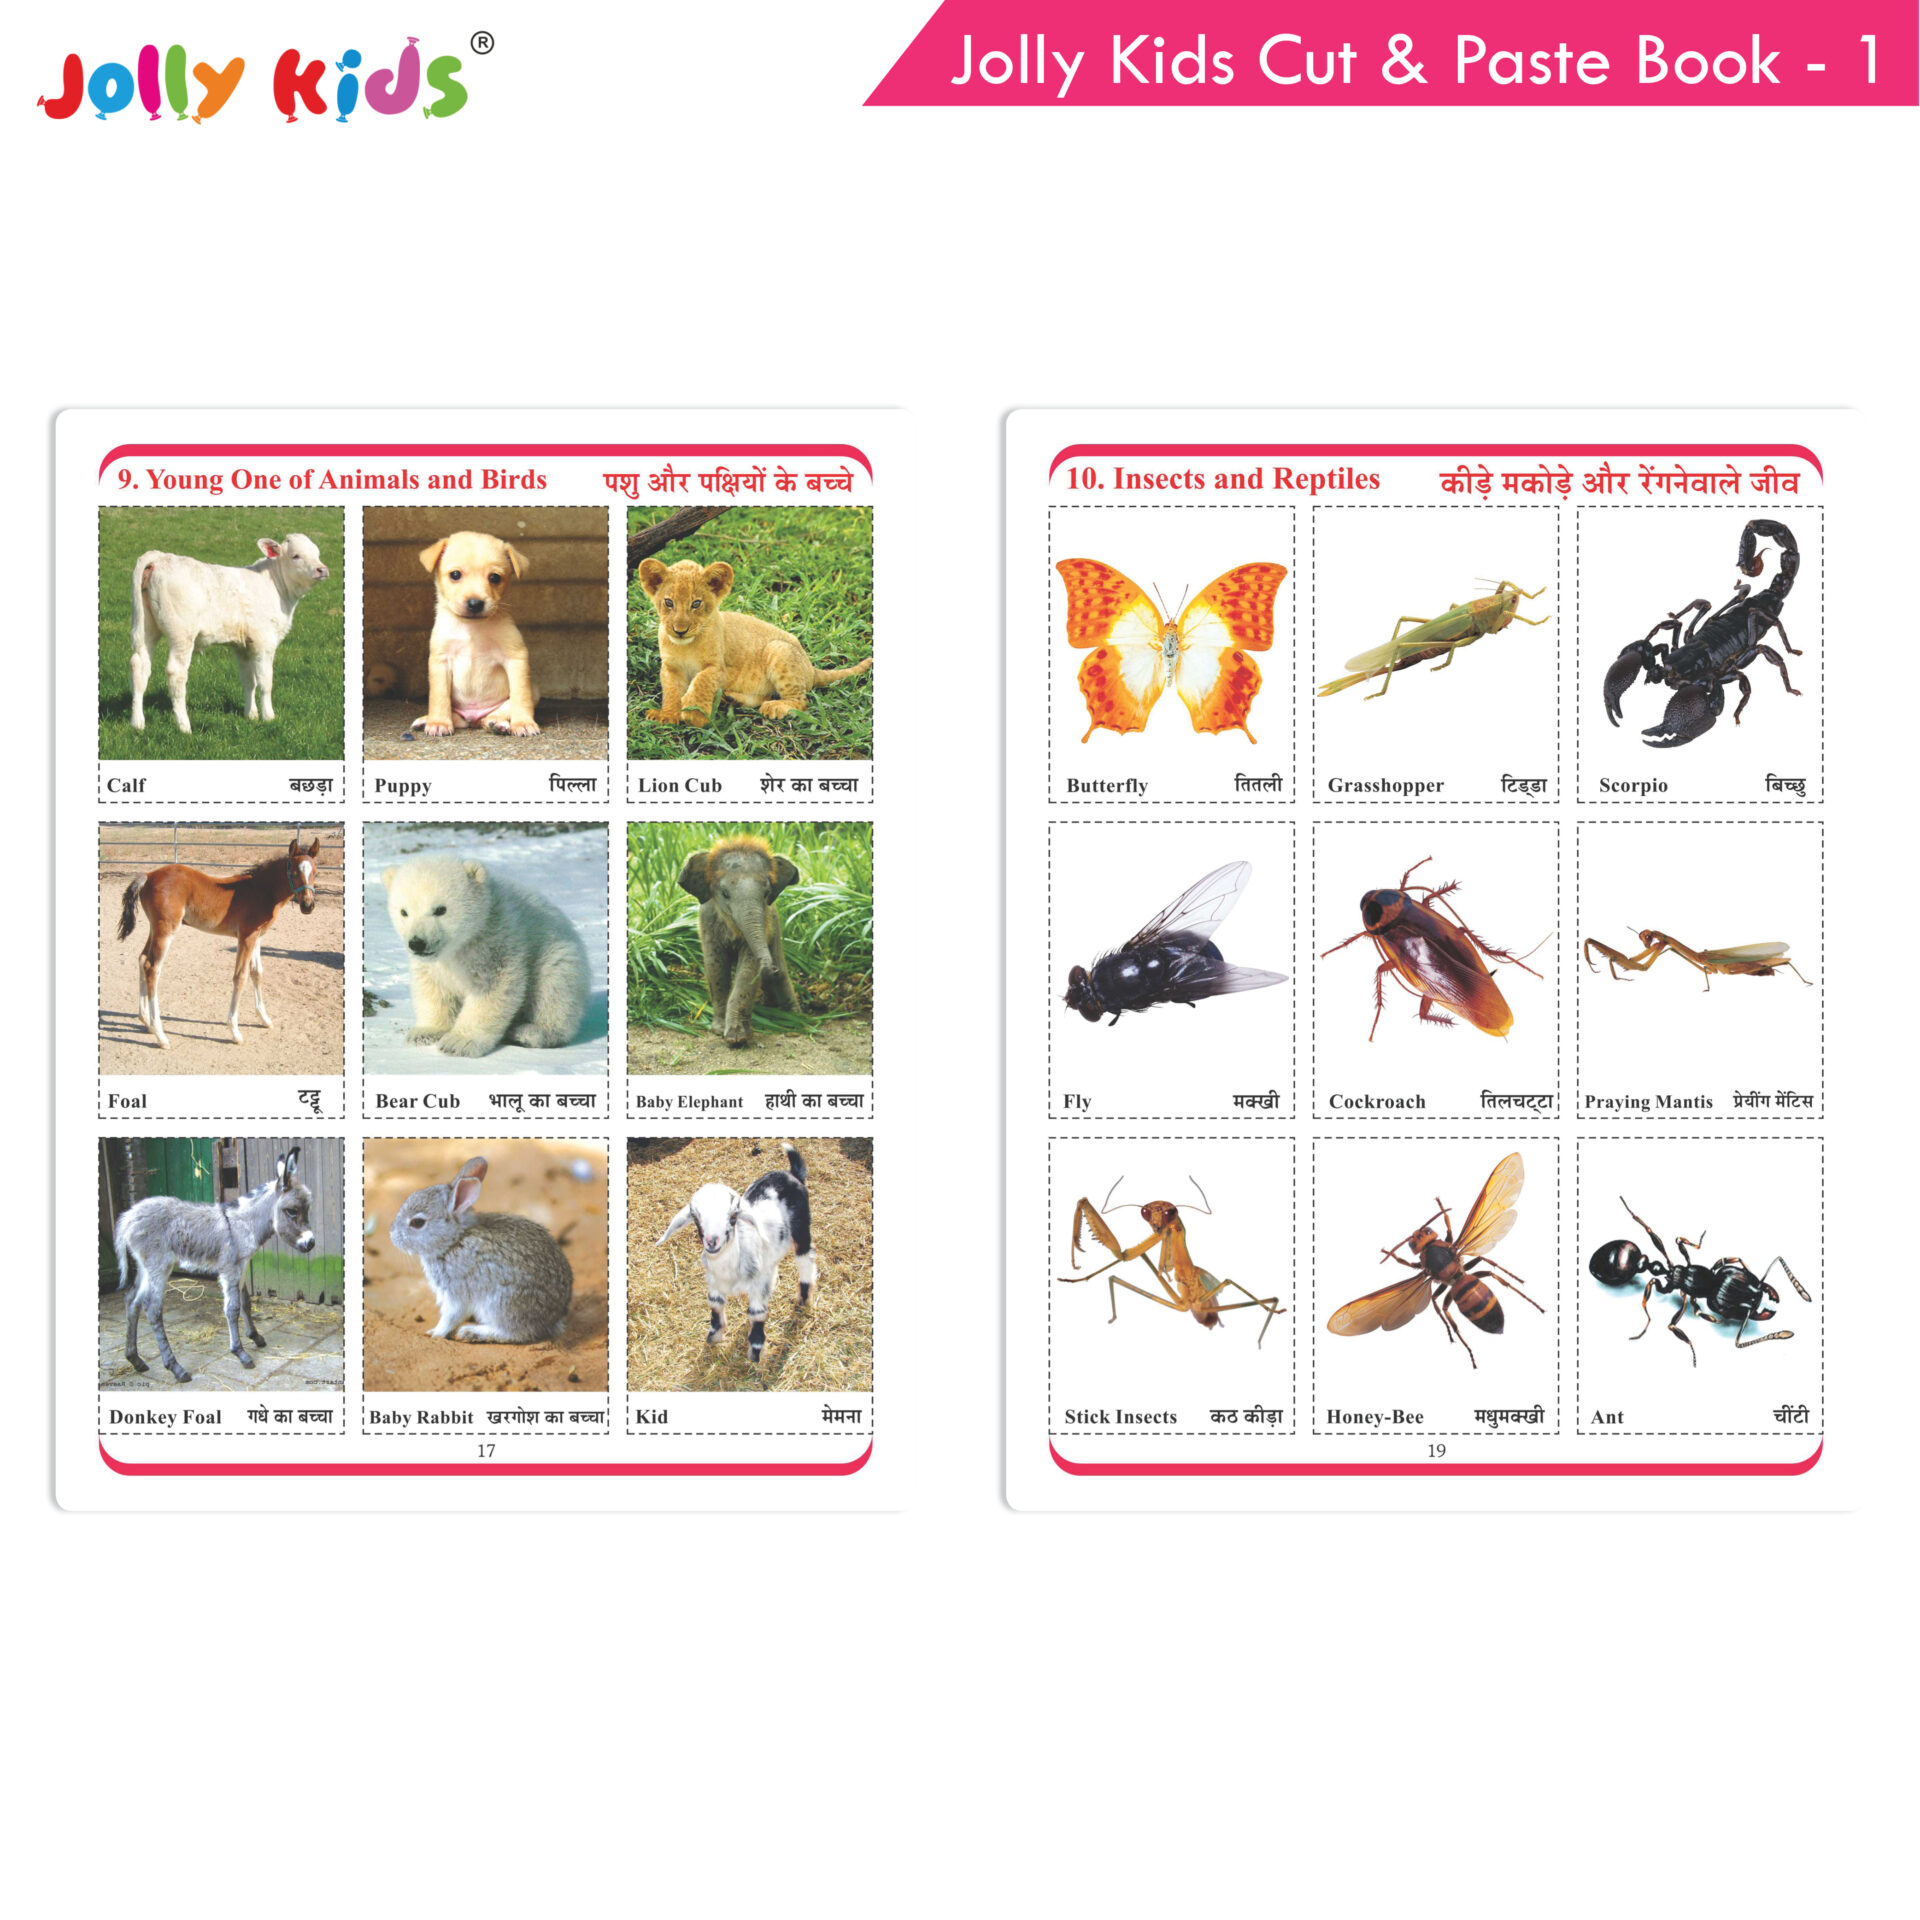 Jolly Kids Cut and Paste Book 1 7